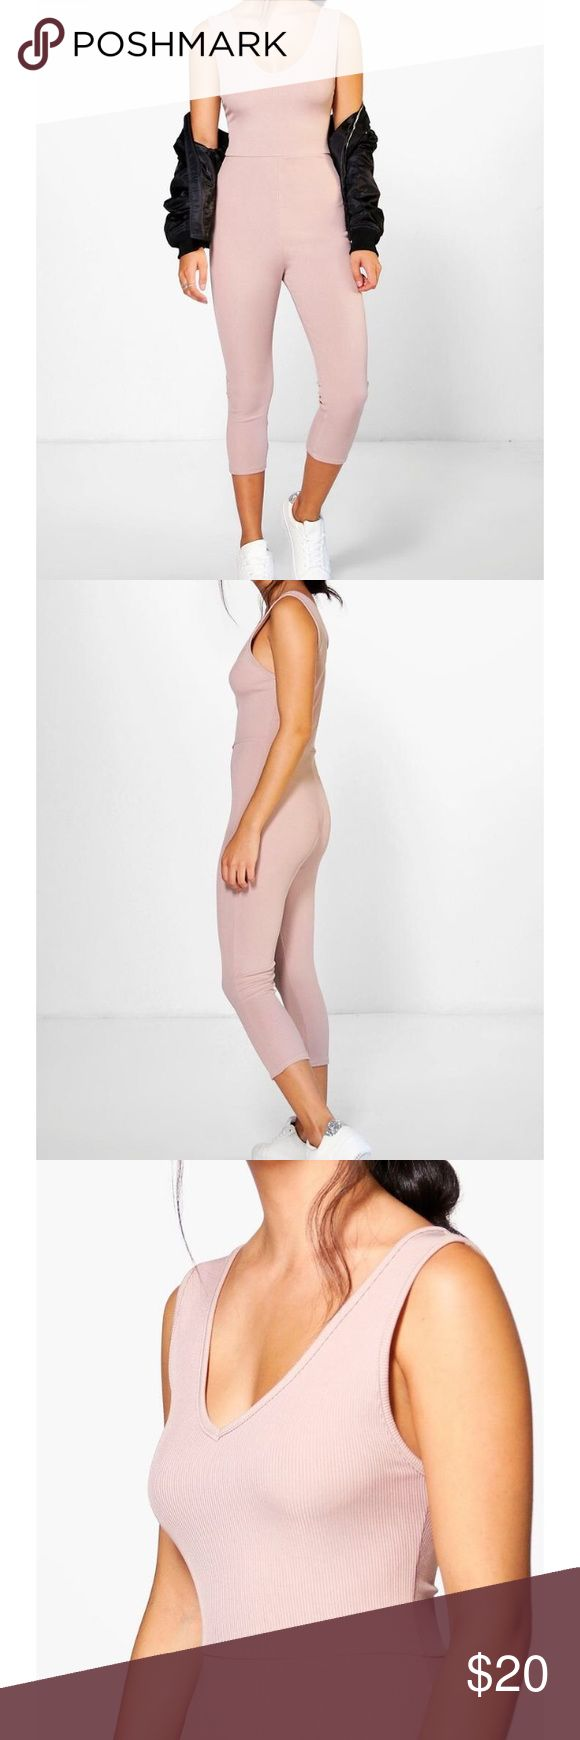 Boohoo Ribbed jumpsuit in nude Nude jumpsuit cut for a close fit. Wear with sneakers and your favorite bomber to recreate the look! Boohoo Pants Jumpsuits & Rompers